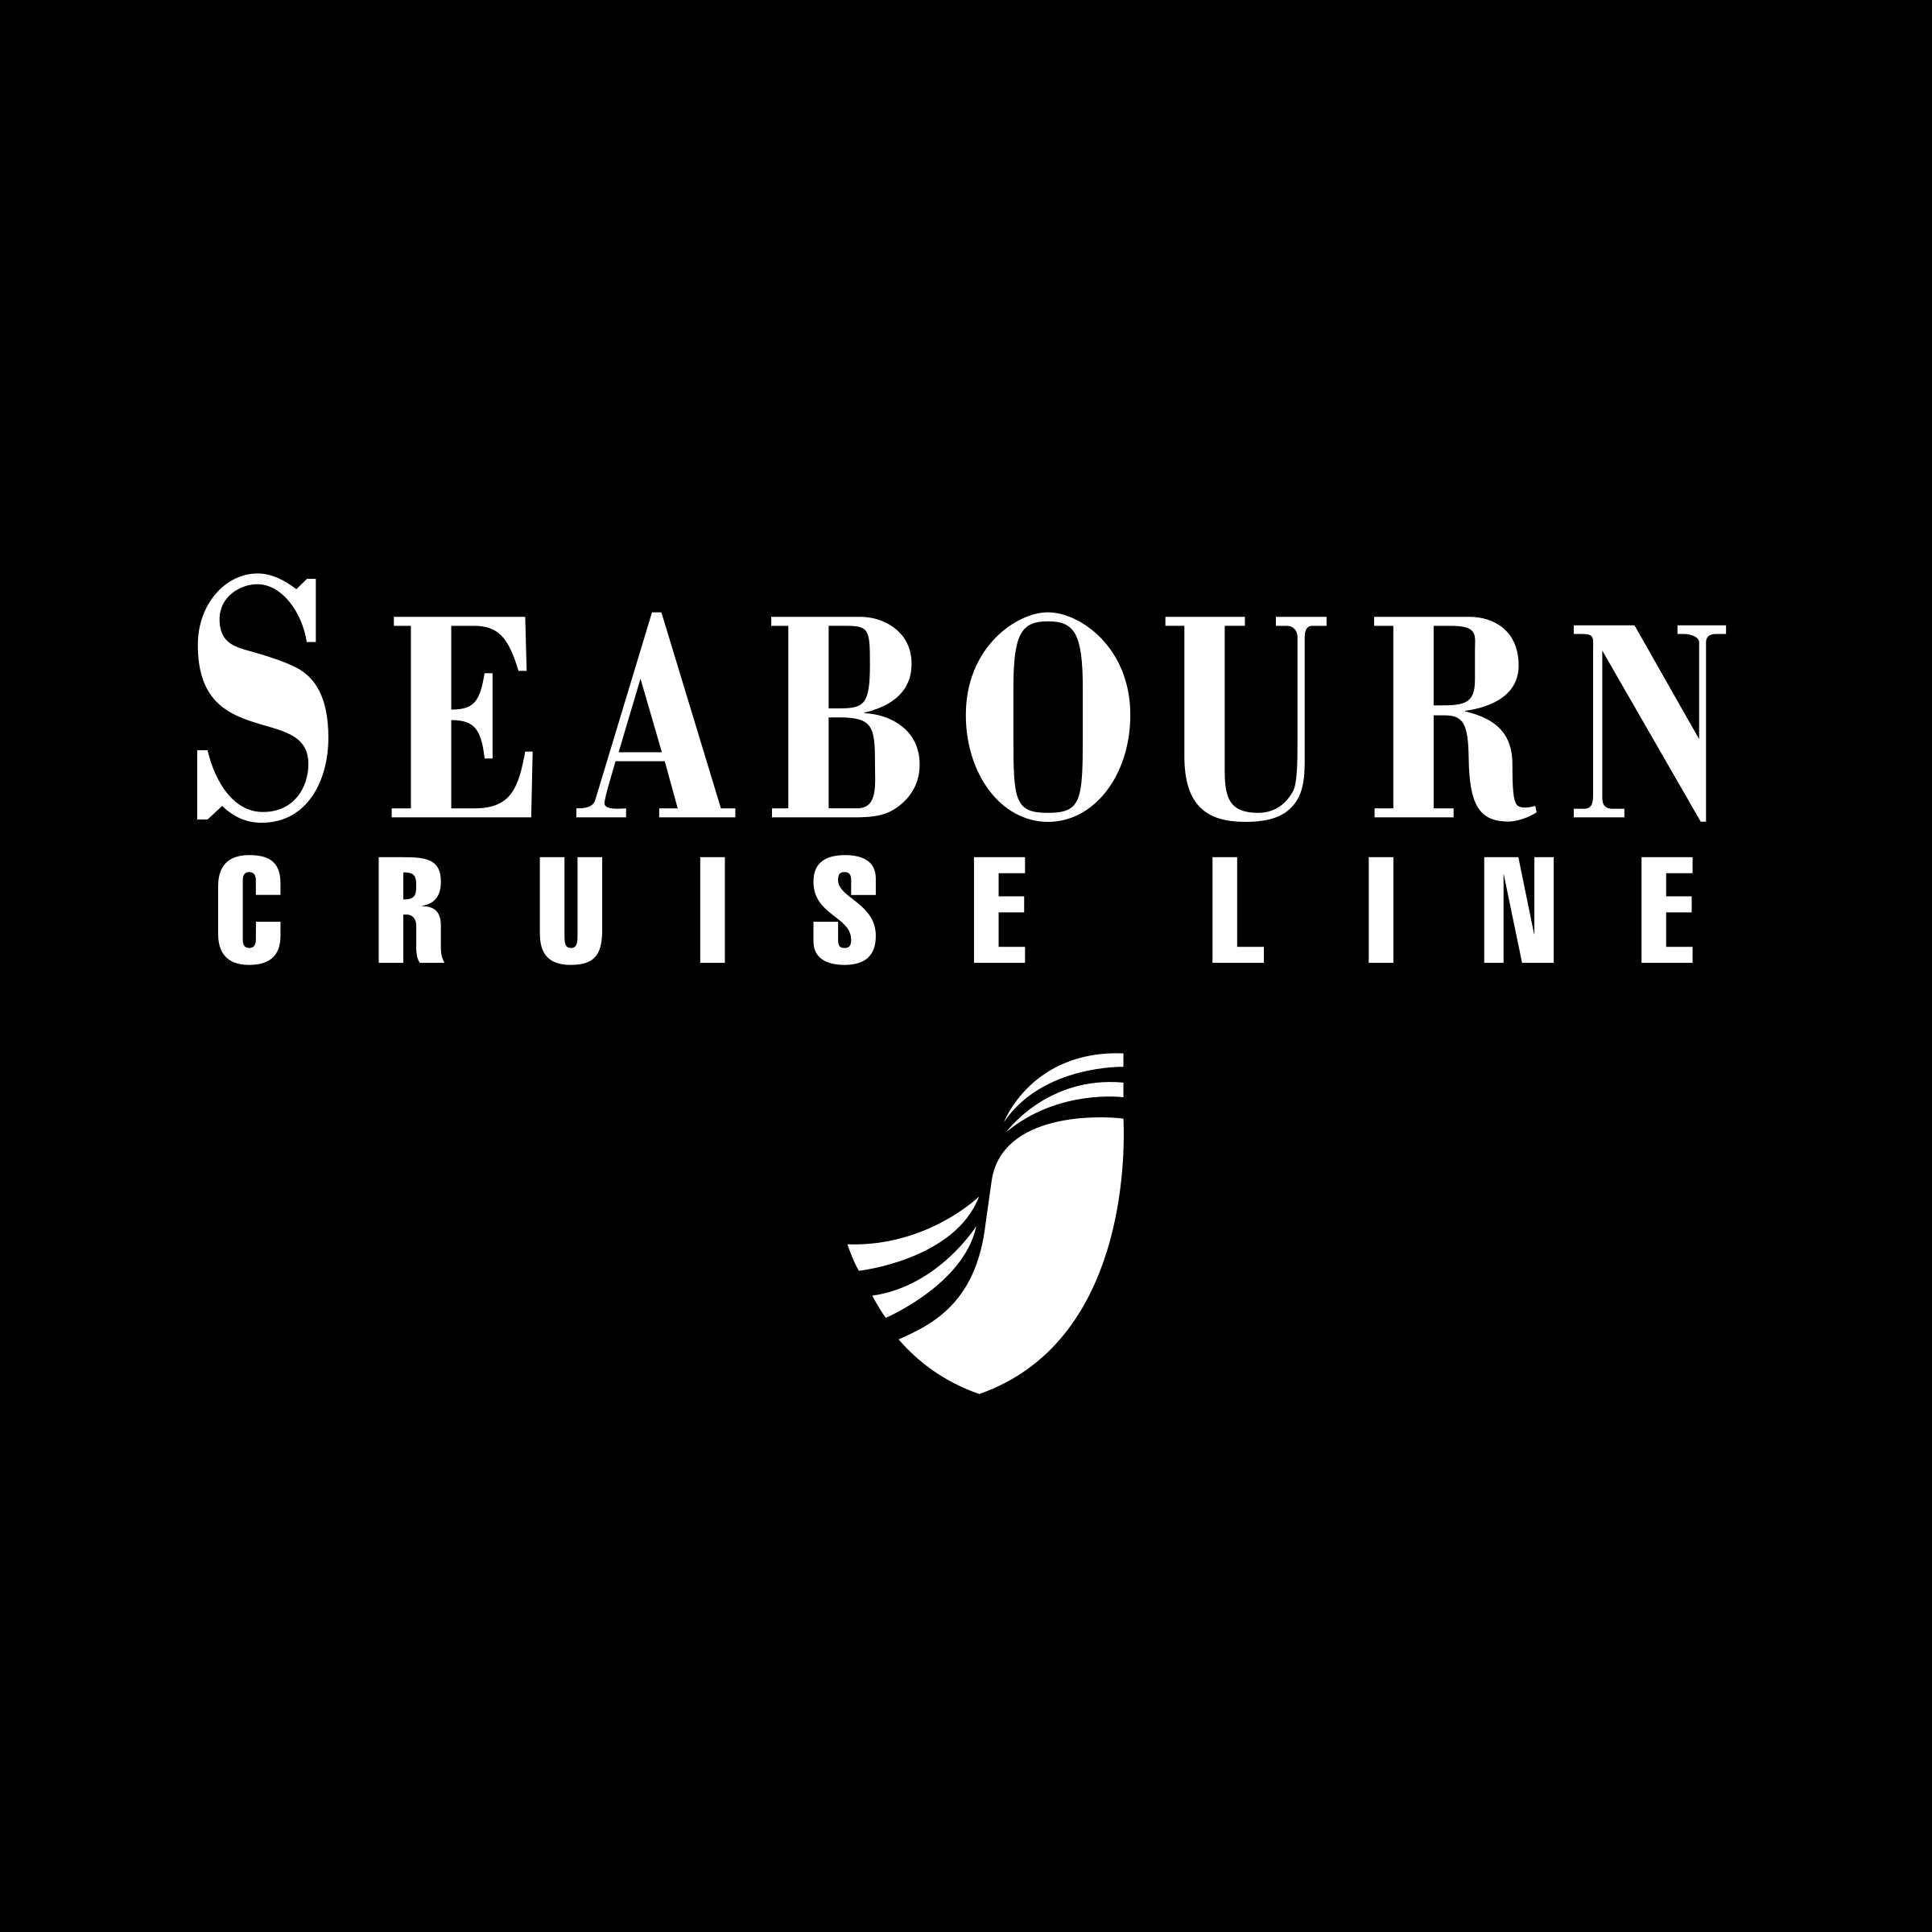 Seabourn Cruise Line Logo PNG Transparent & SVG Vector.